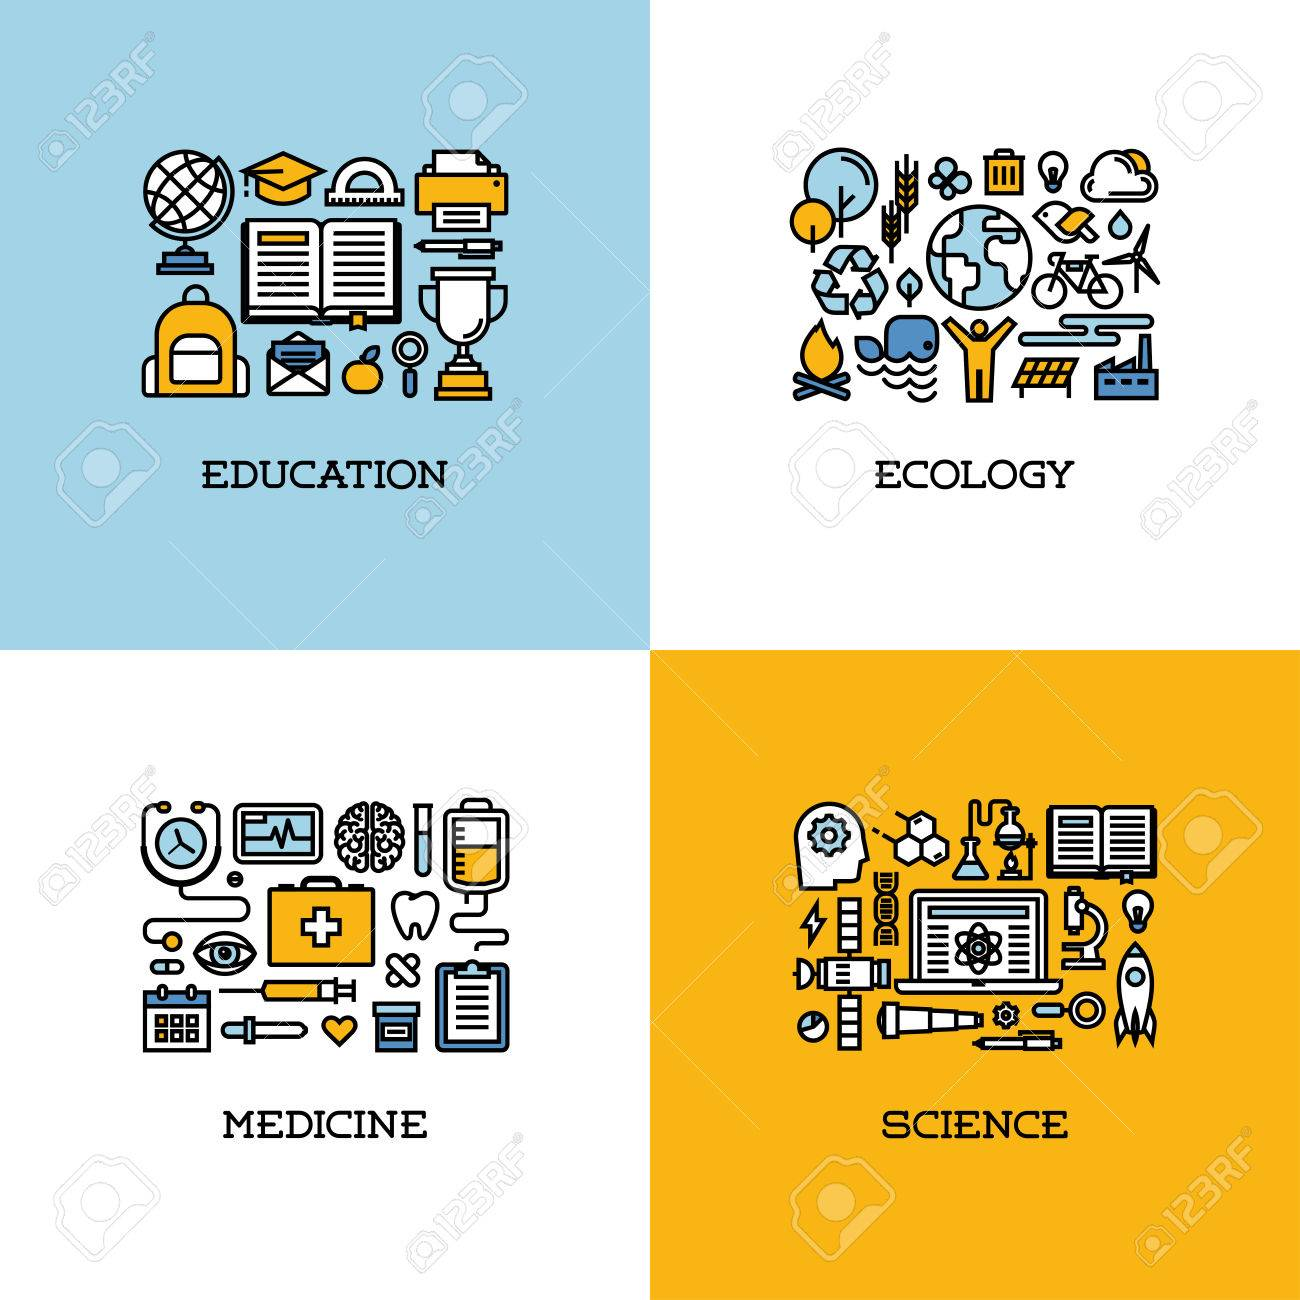 website creation stock photos images 6 063 royalty website website creation flat line icons set of education ecology medicine science